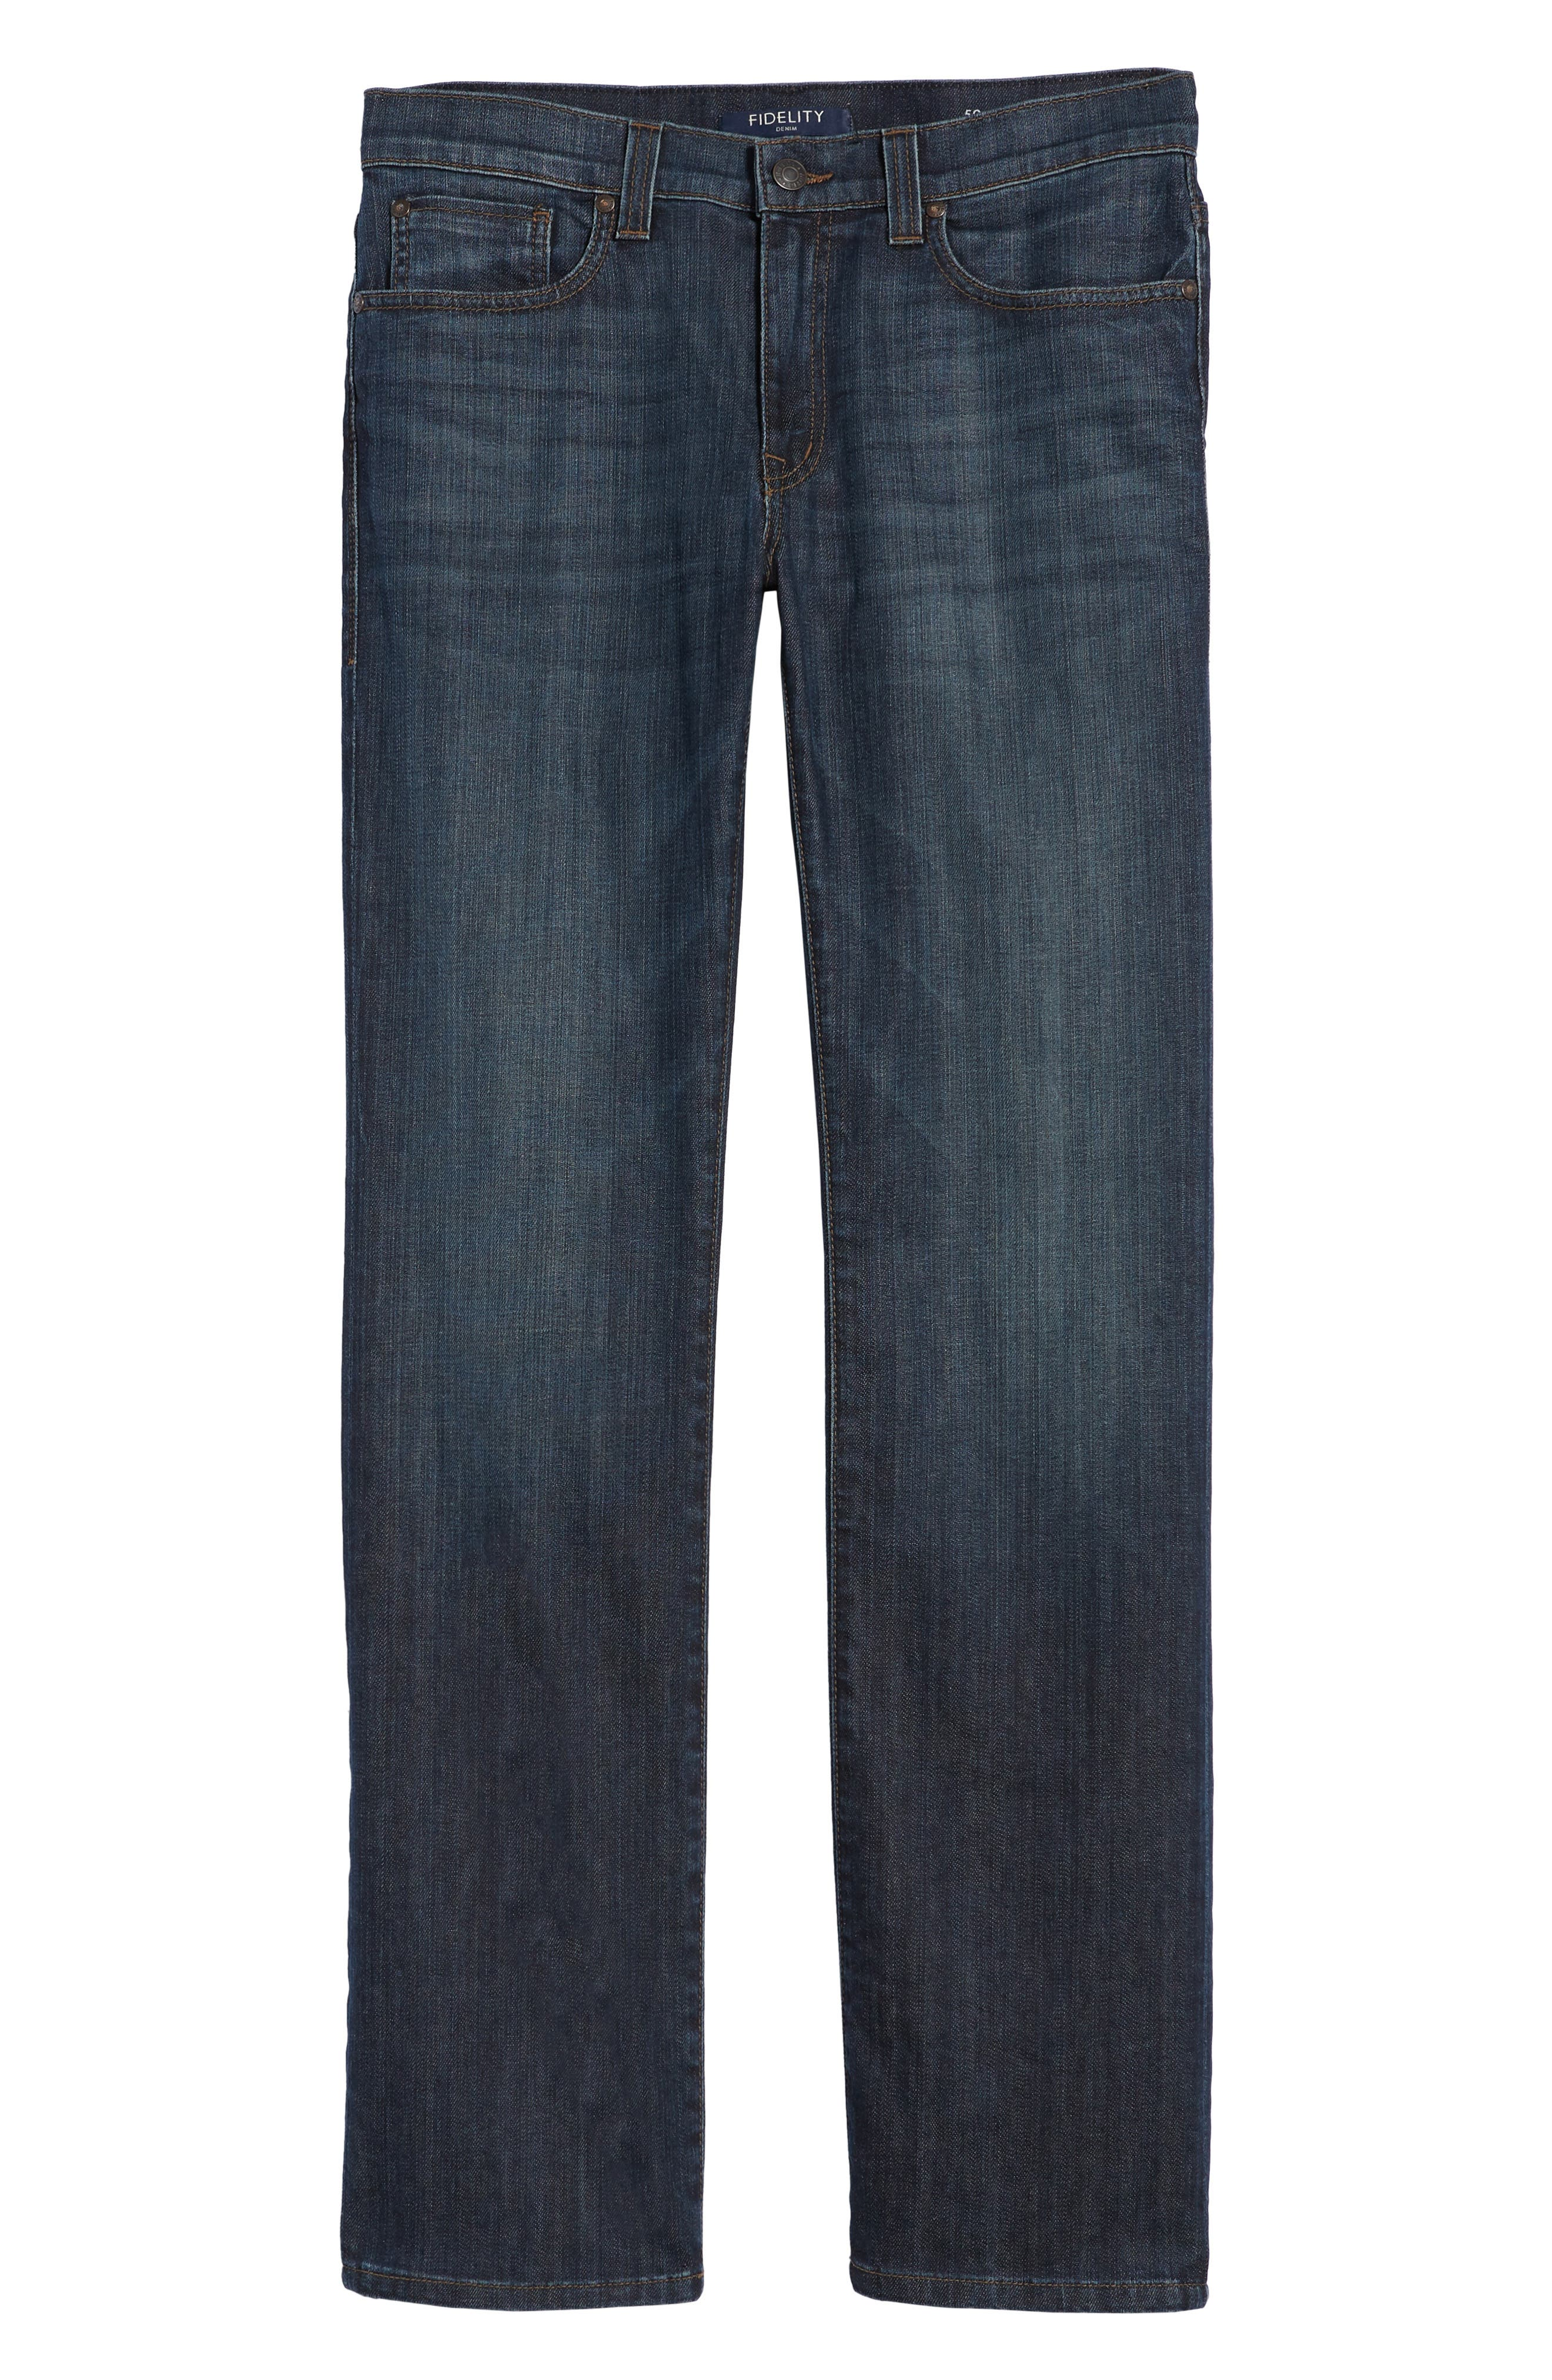 50-11 Relaxed Fit Jeans,                             Alternate thumbnail 6, color,                             400